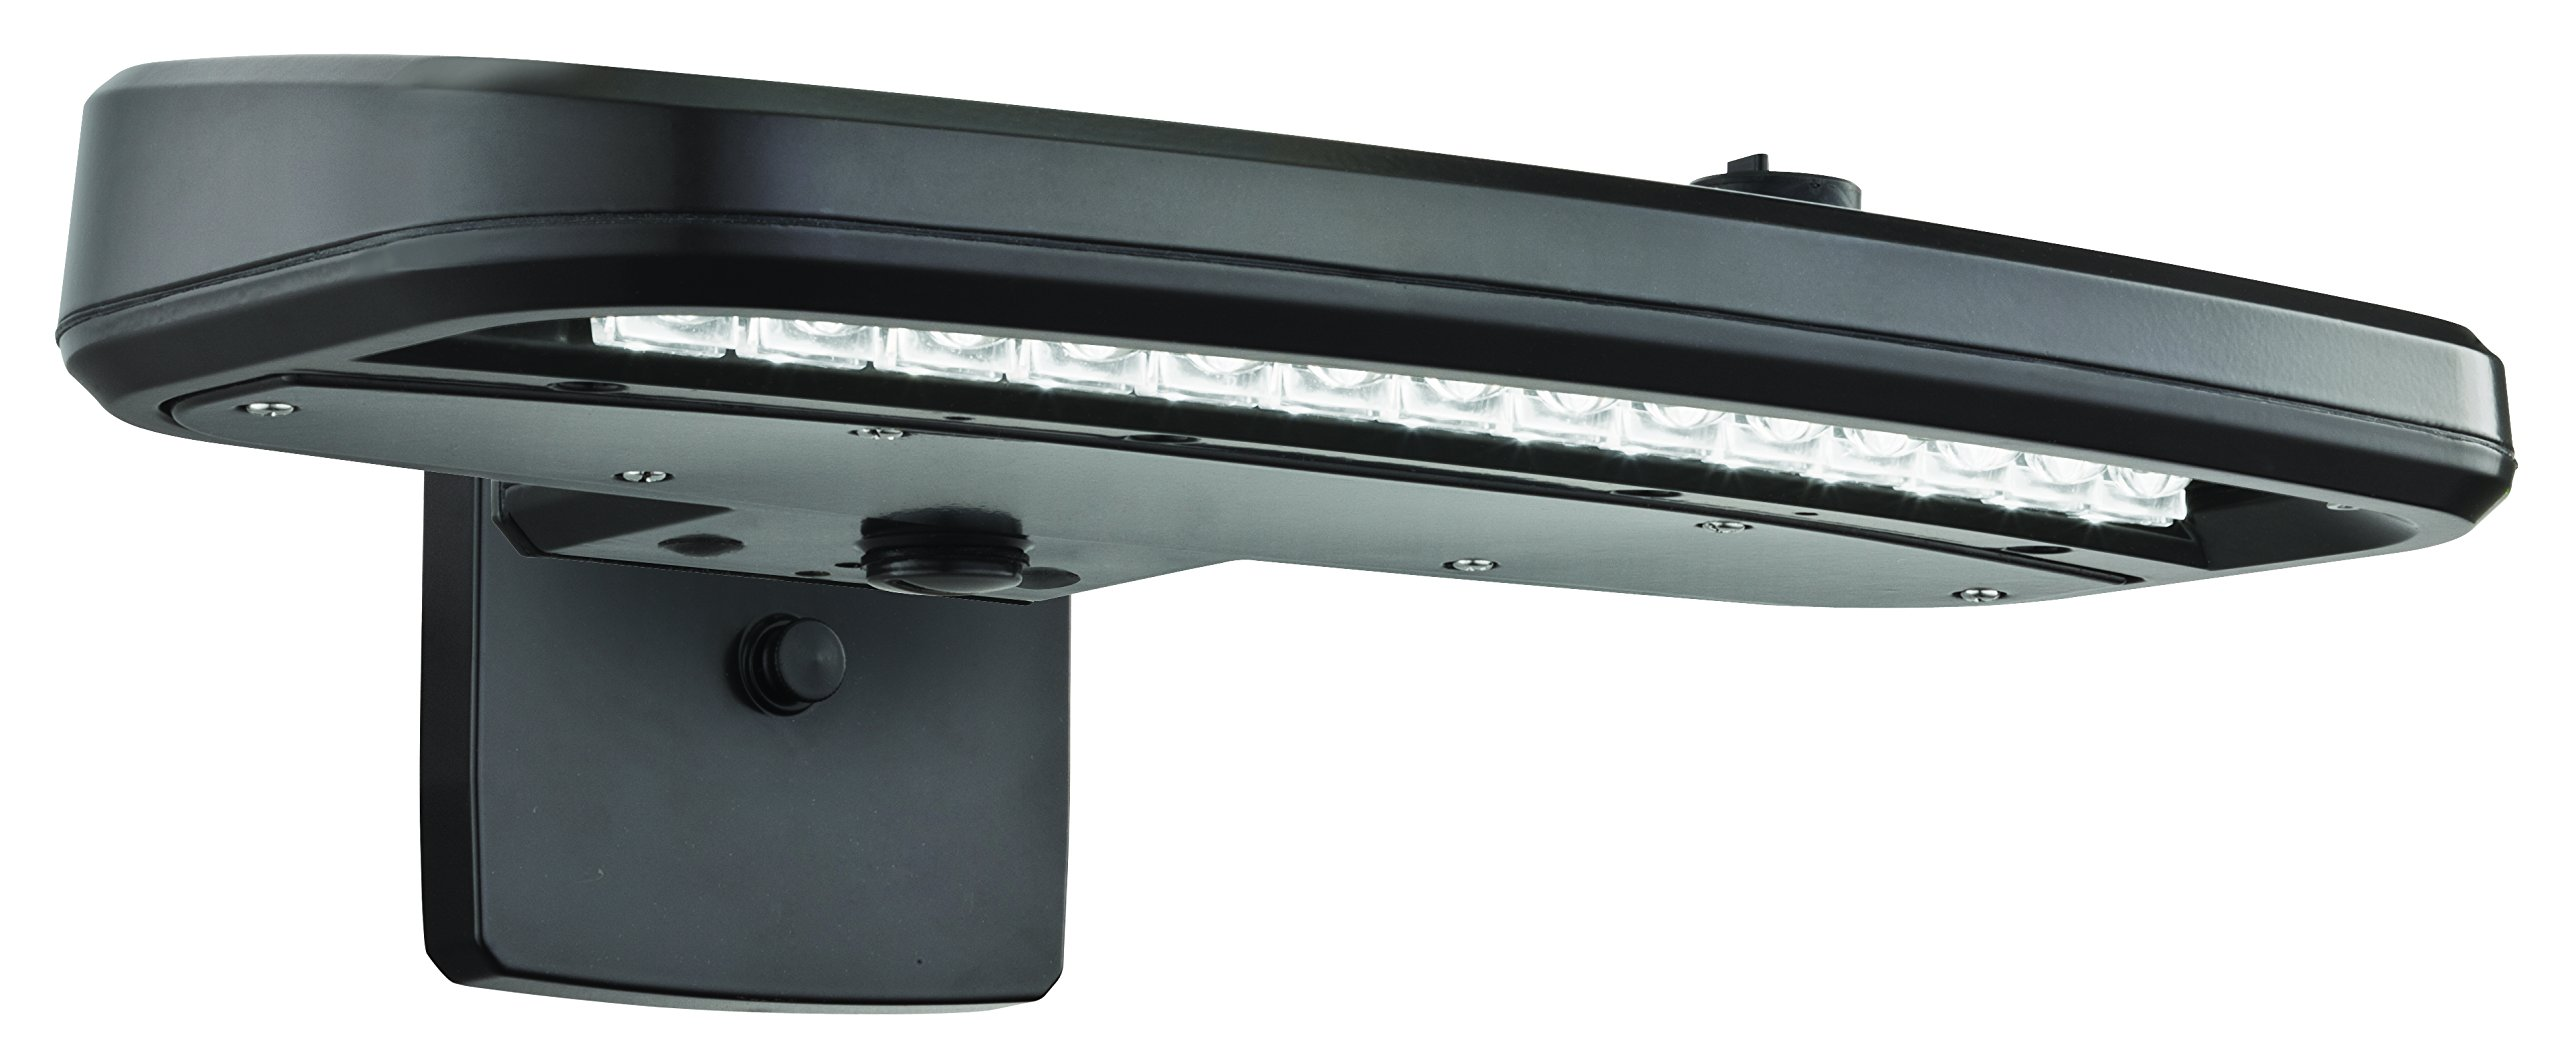 Lithonia Lighting OLW 31 M2 Dark BZ LED Outdoor Wall Pack/Area Light